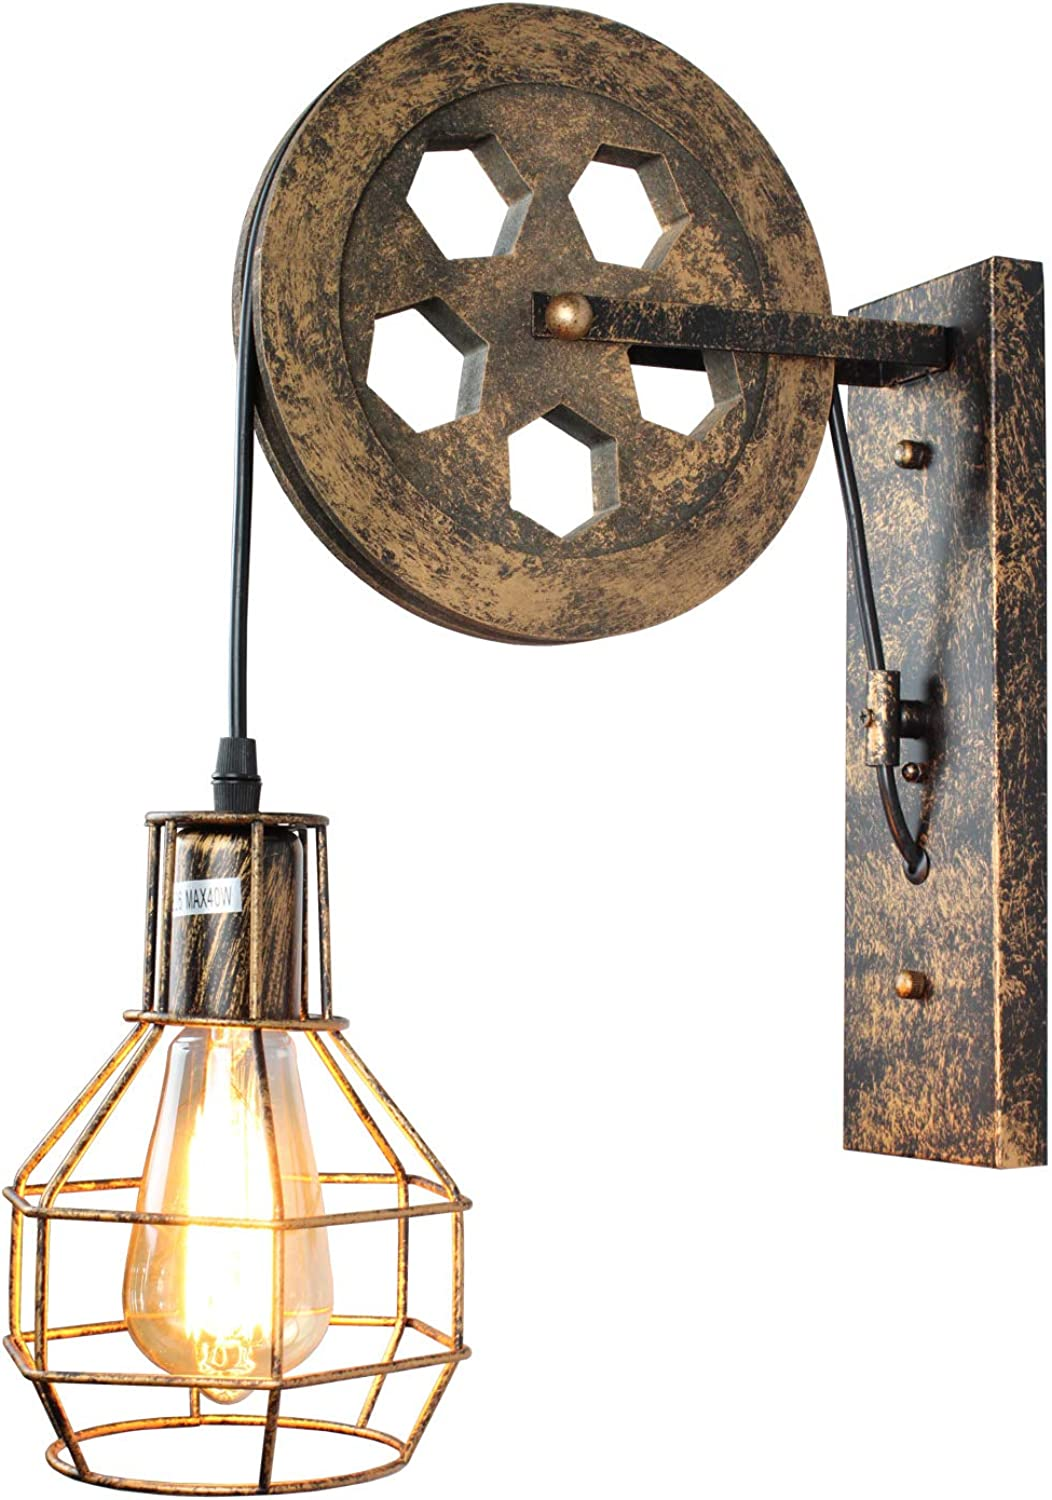 1 Light,Industrial Retro Iron Wall Lamp Creative Personality Lift Pulley Wall Lights Fixture for Indoor Lighting Barn Restaurant in Bronze Finished by ZPKelin